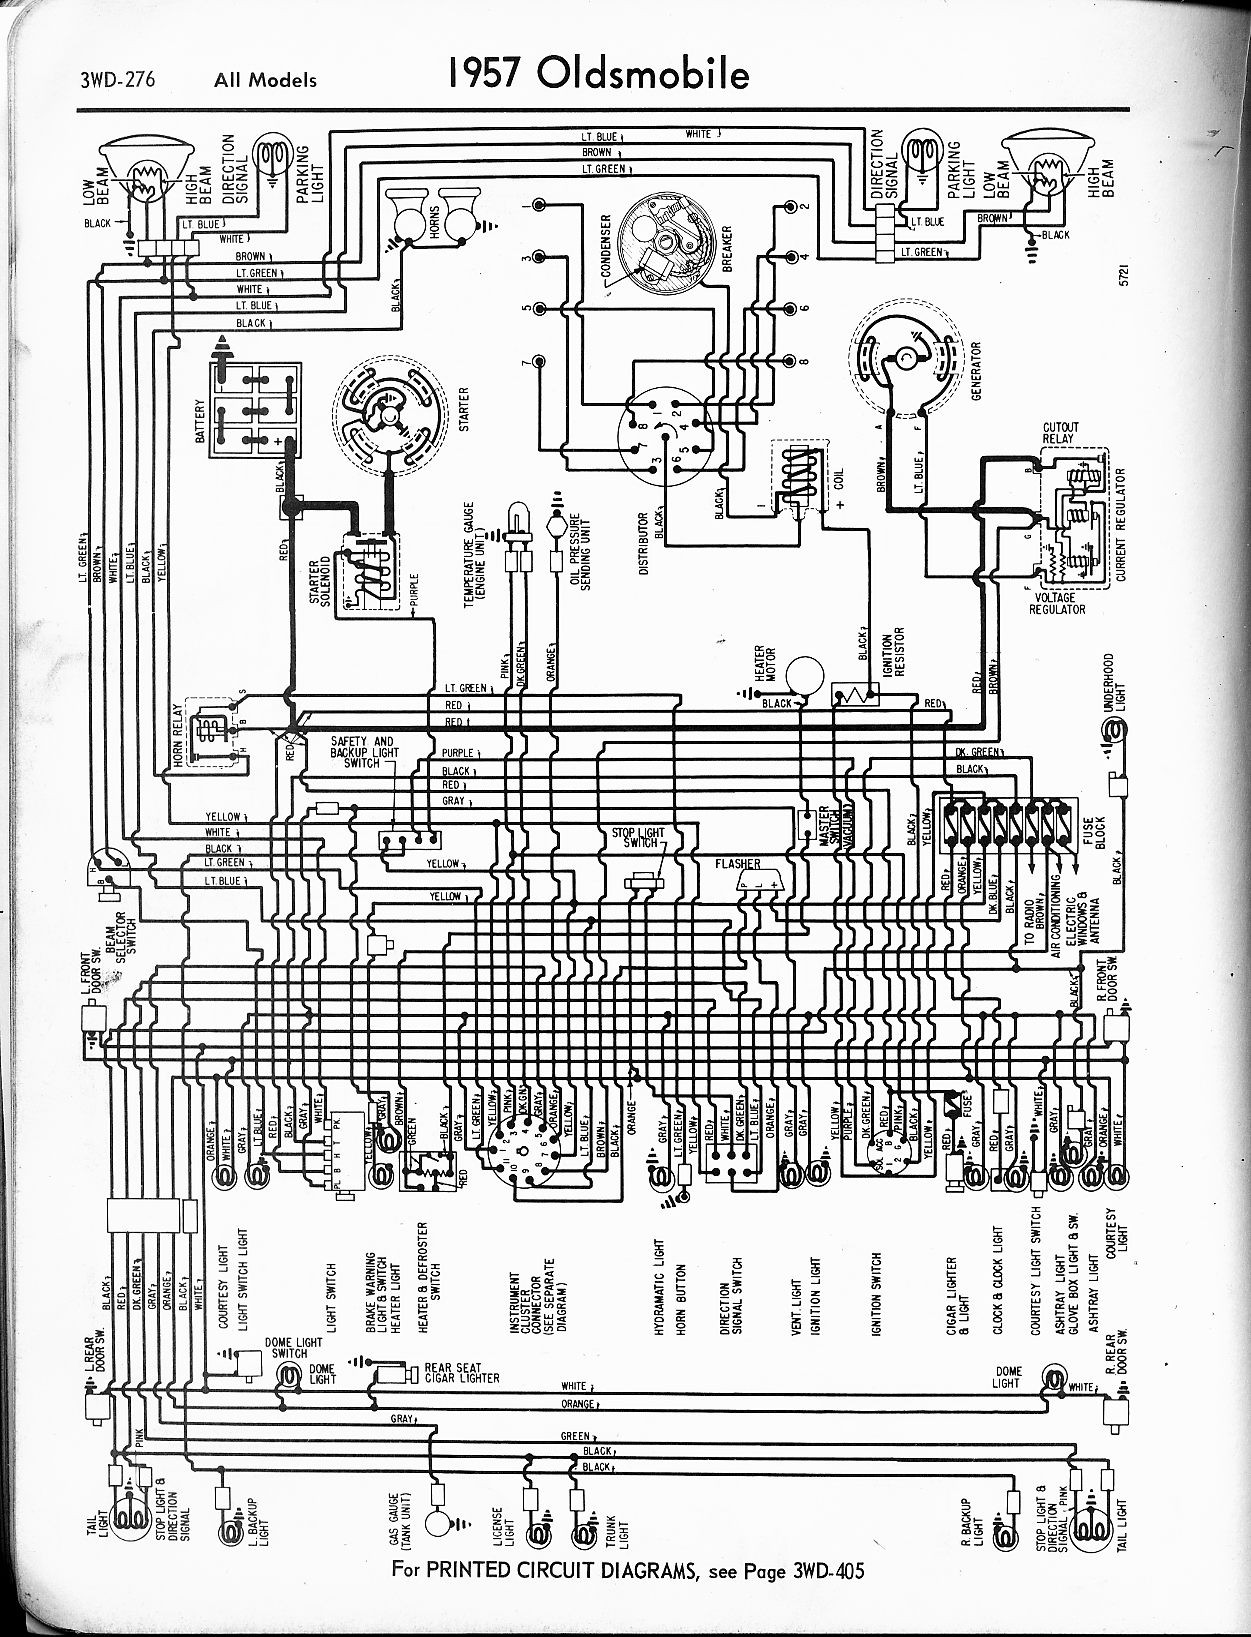 1984 cutlass wiring diagram search for wiring diagrams u2022 rh idijournal com